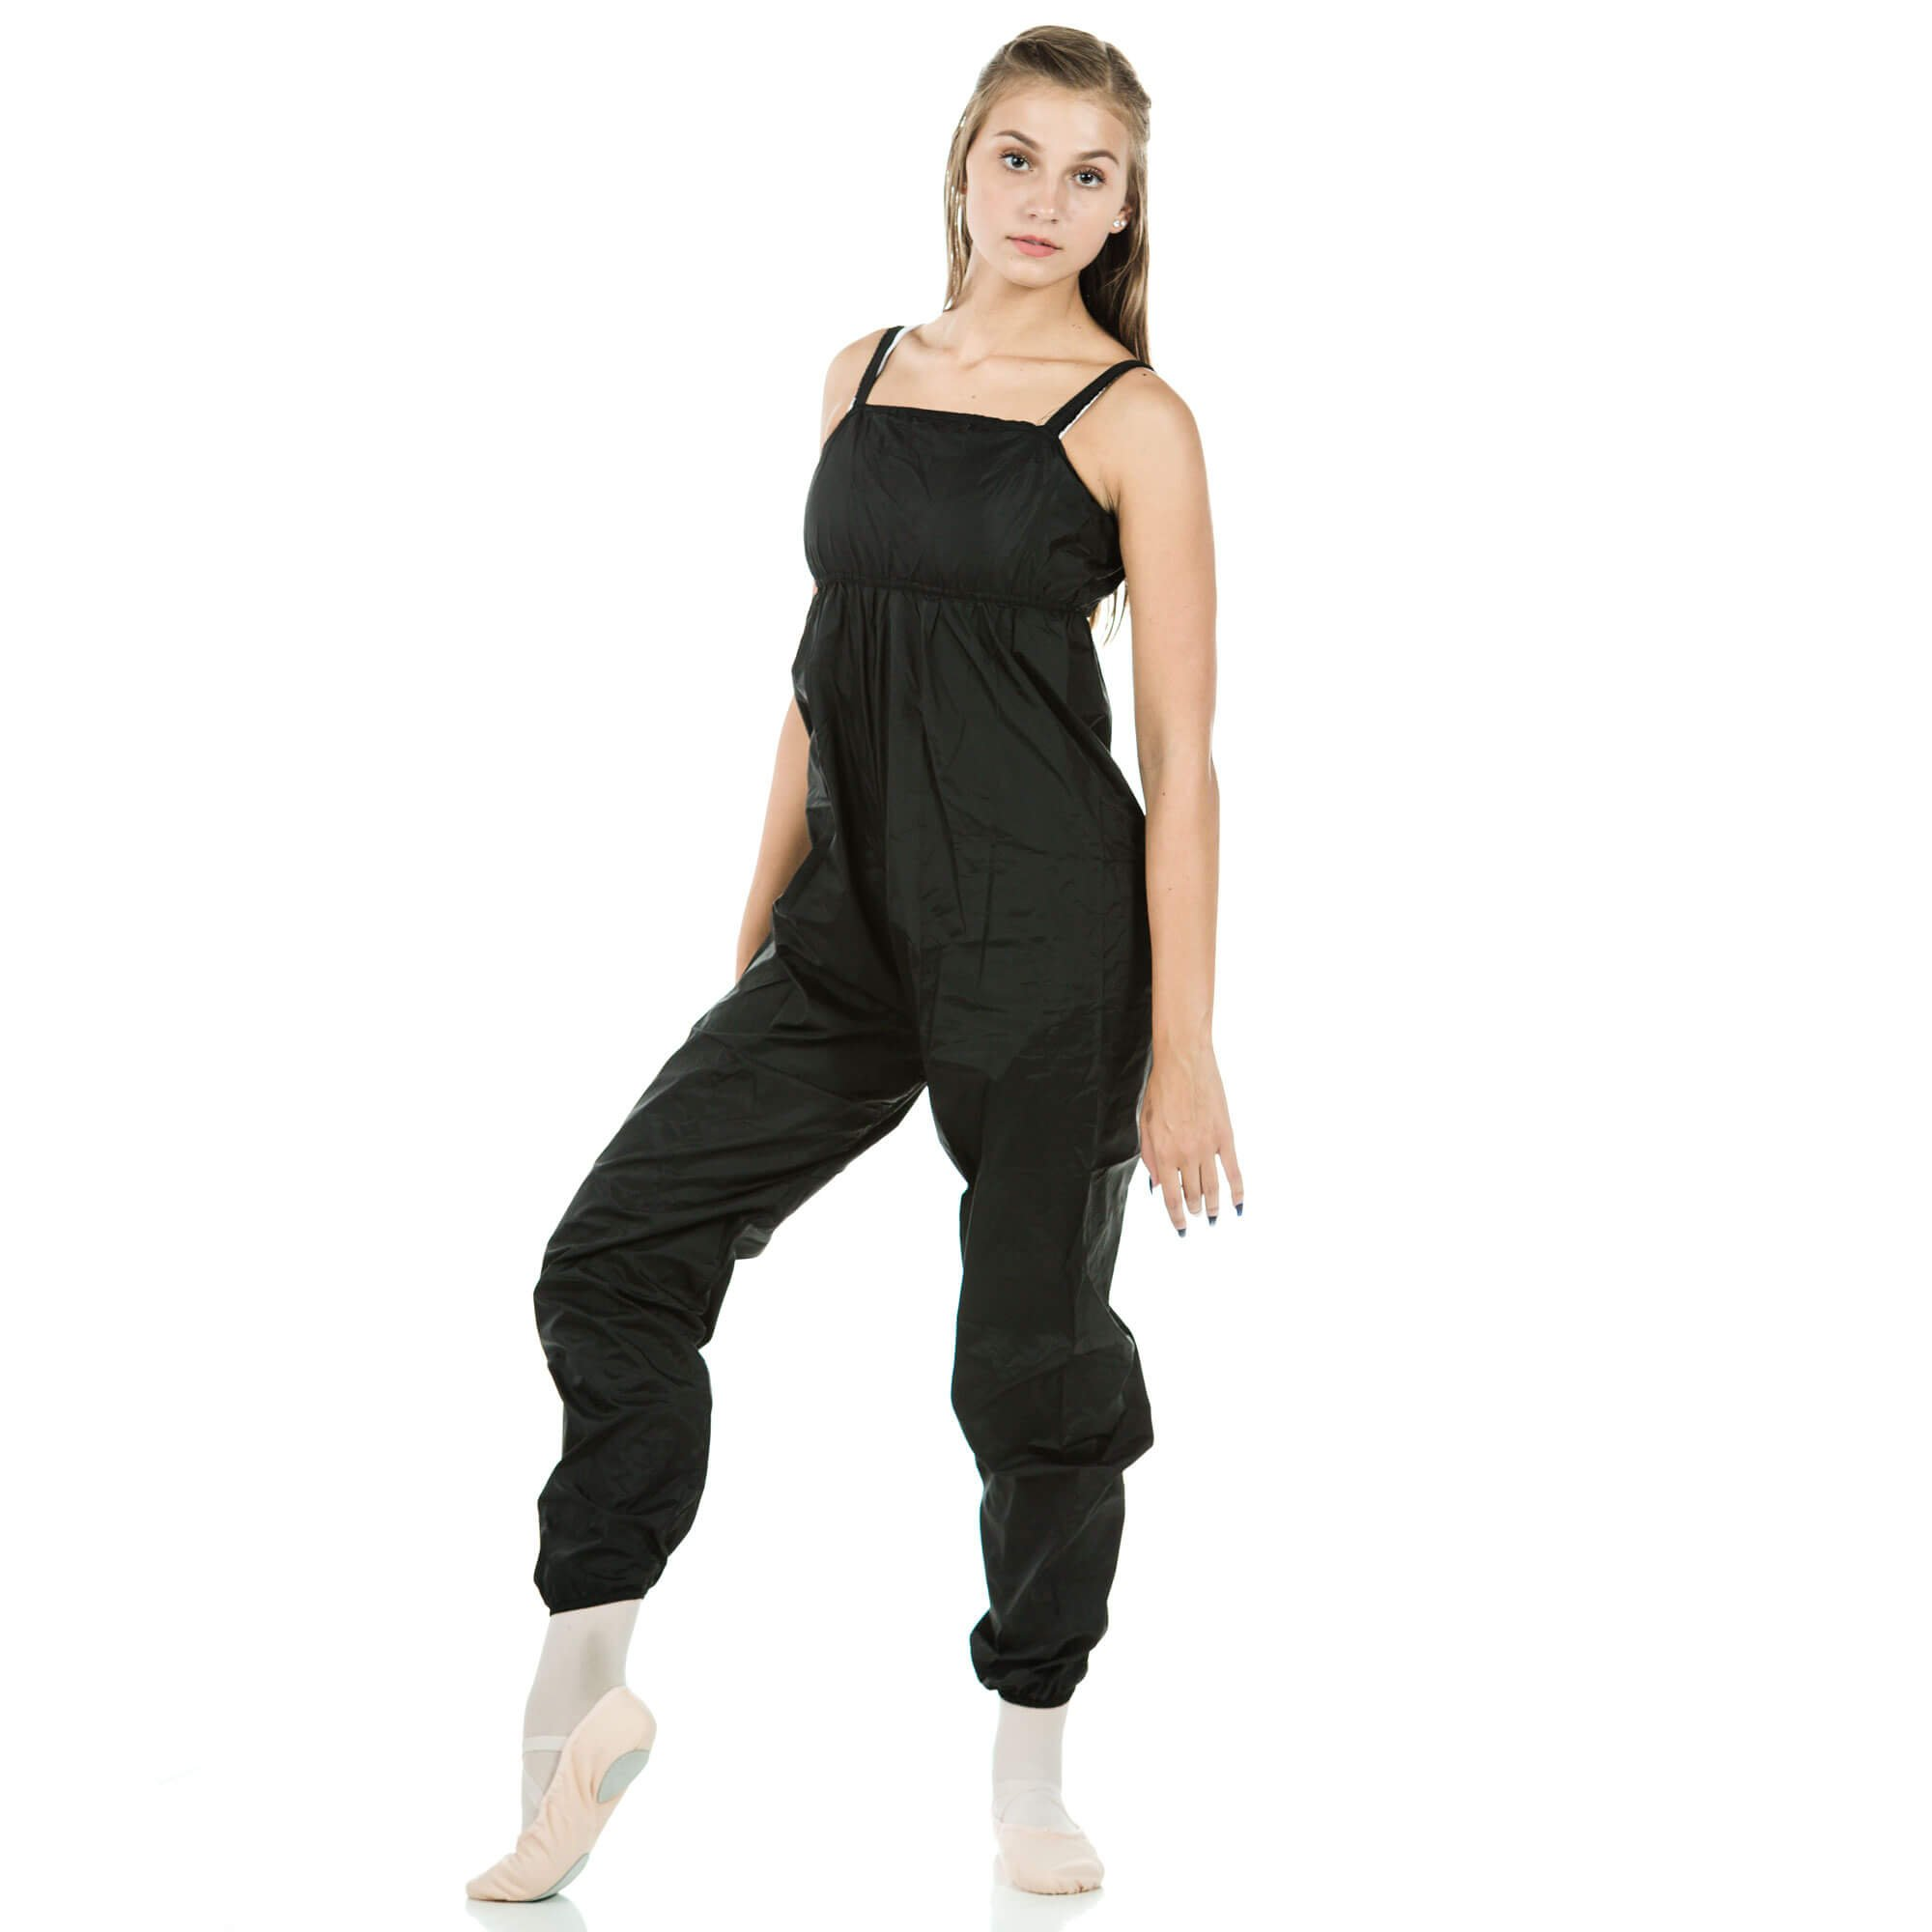 Coesi Danza Long Warm-up Sweatpants